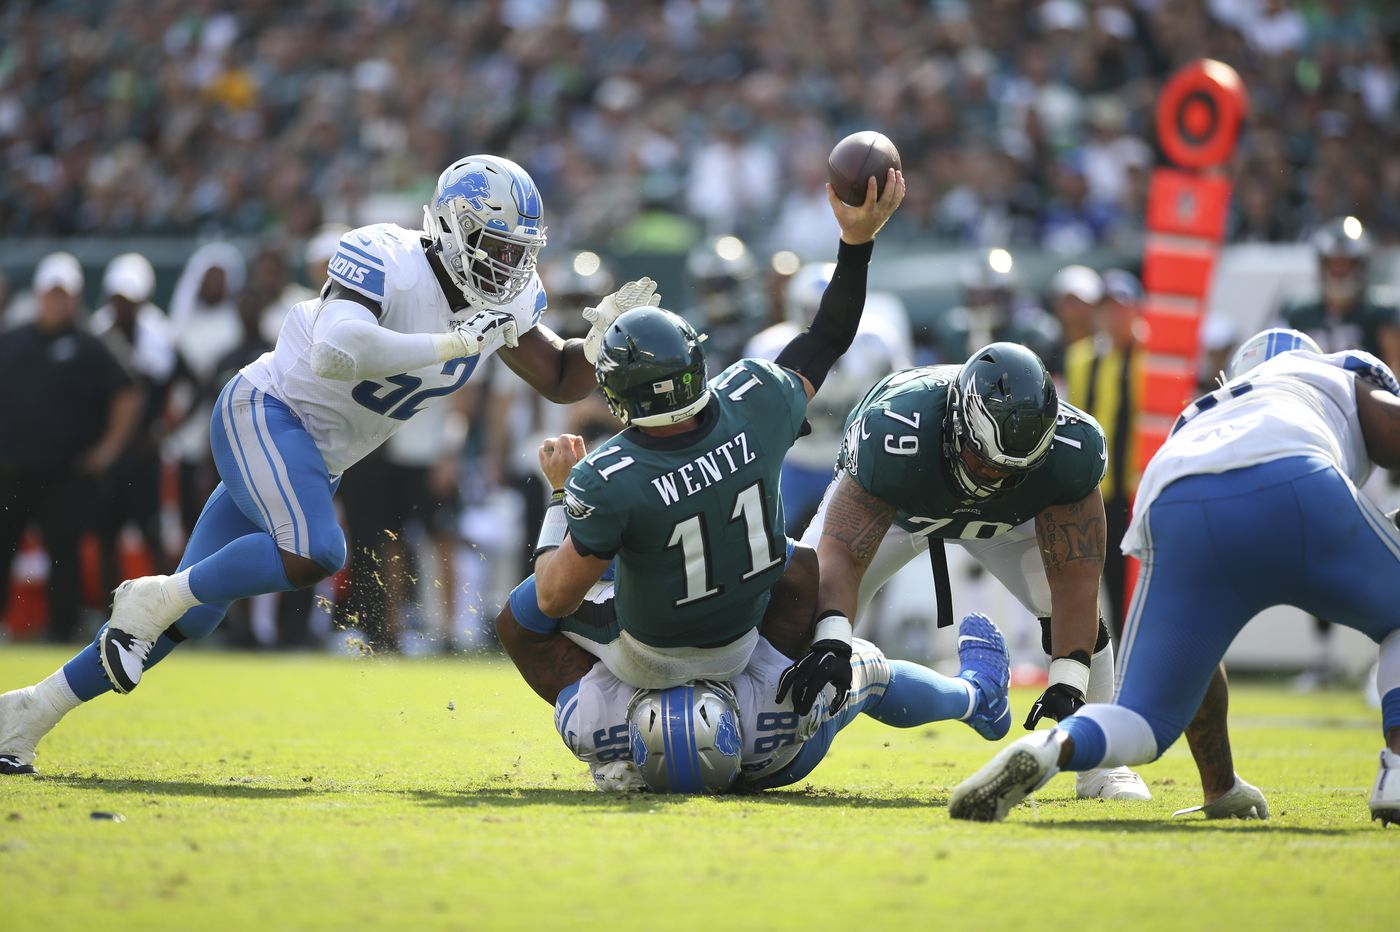 Eagles still could have beaten the Lions on final throw, but victory again slipped through their hands